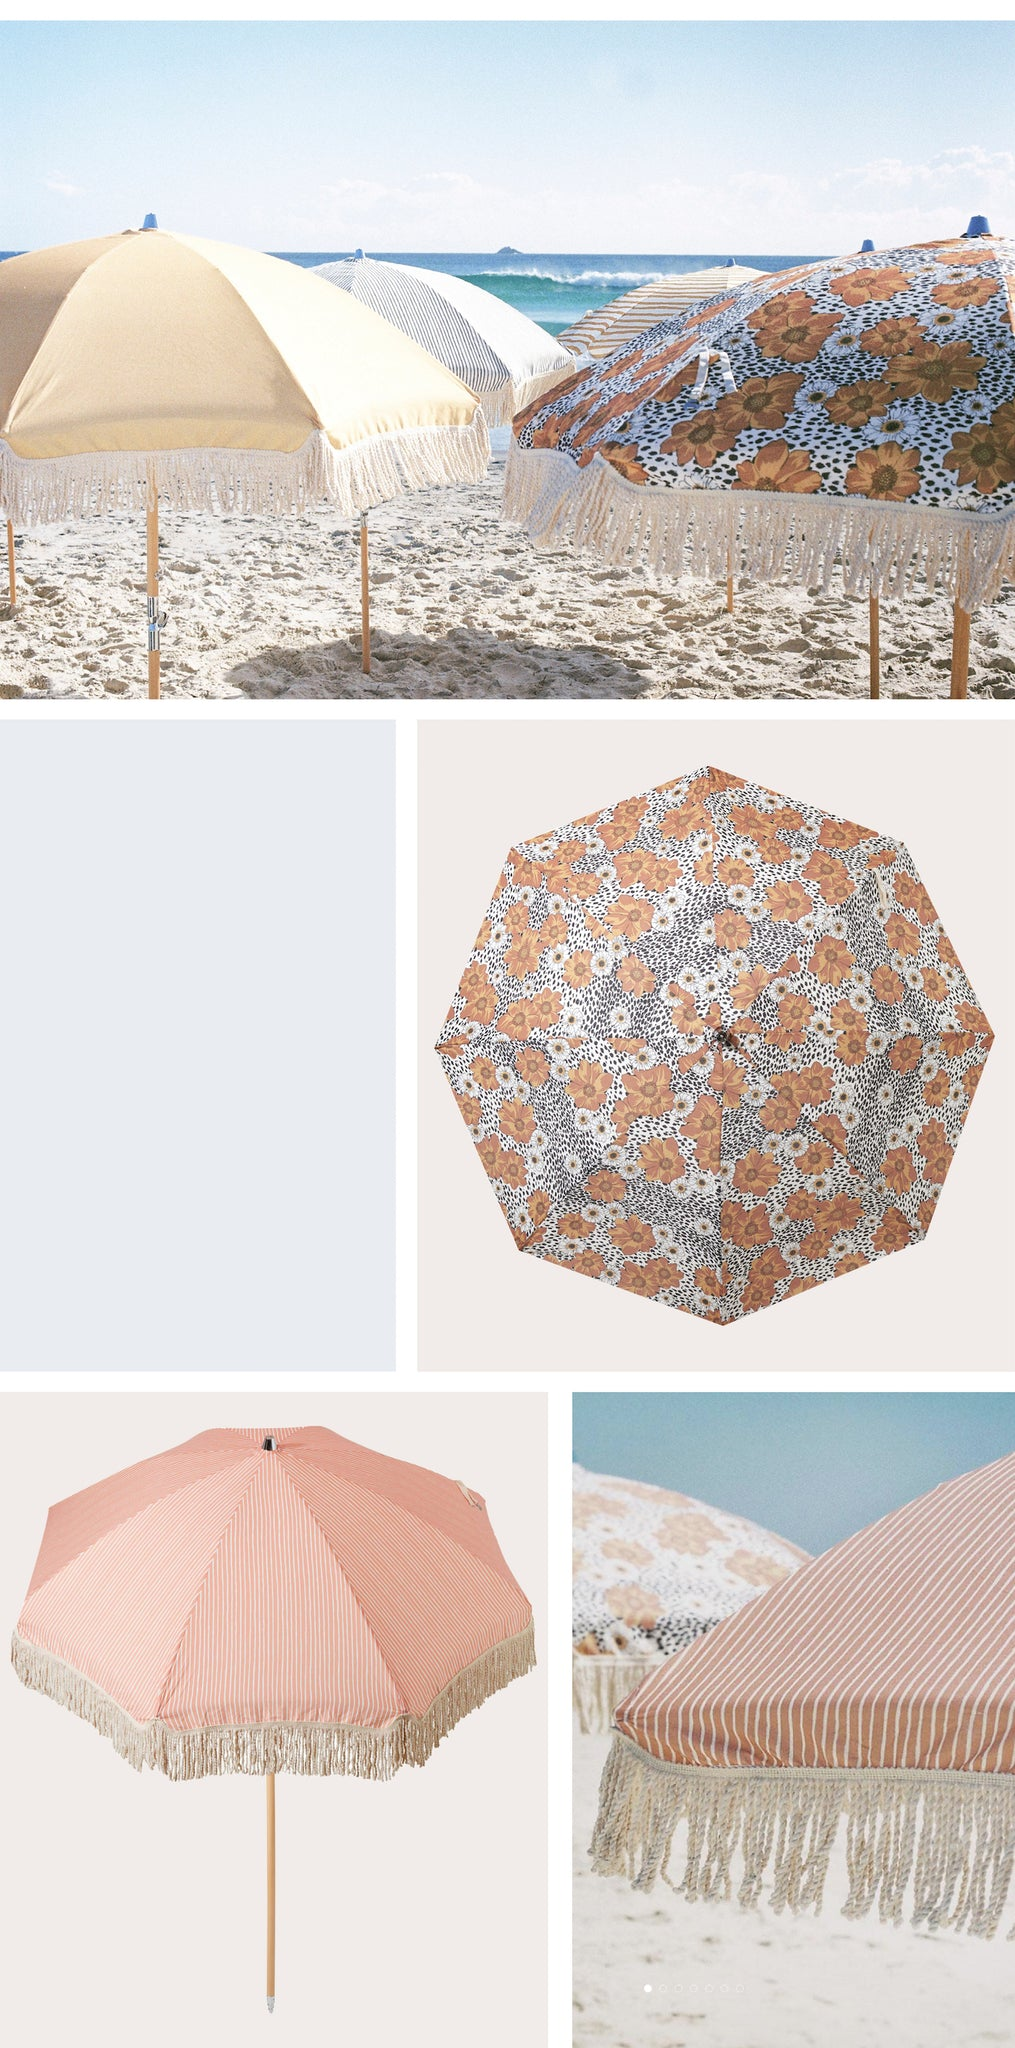 Sunday Supply Co - Beach Umbrellas - Paper Plane